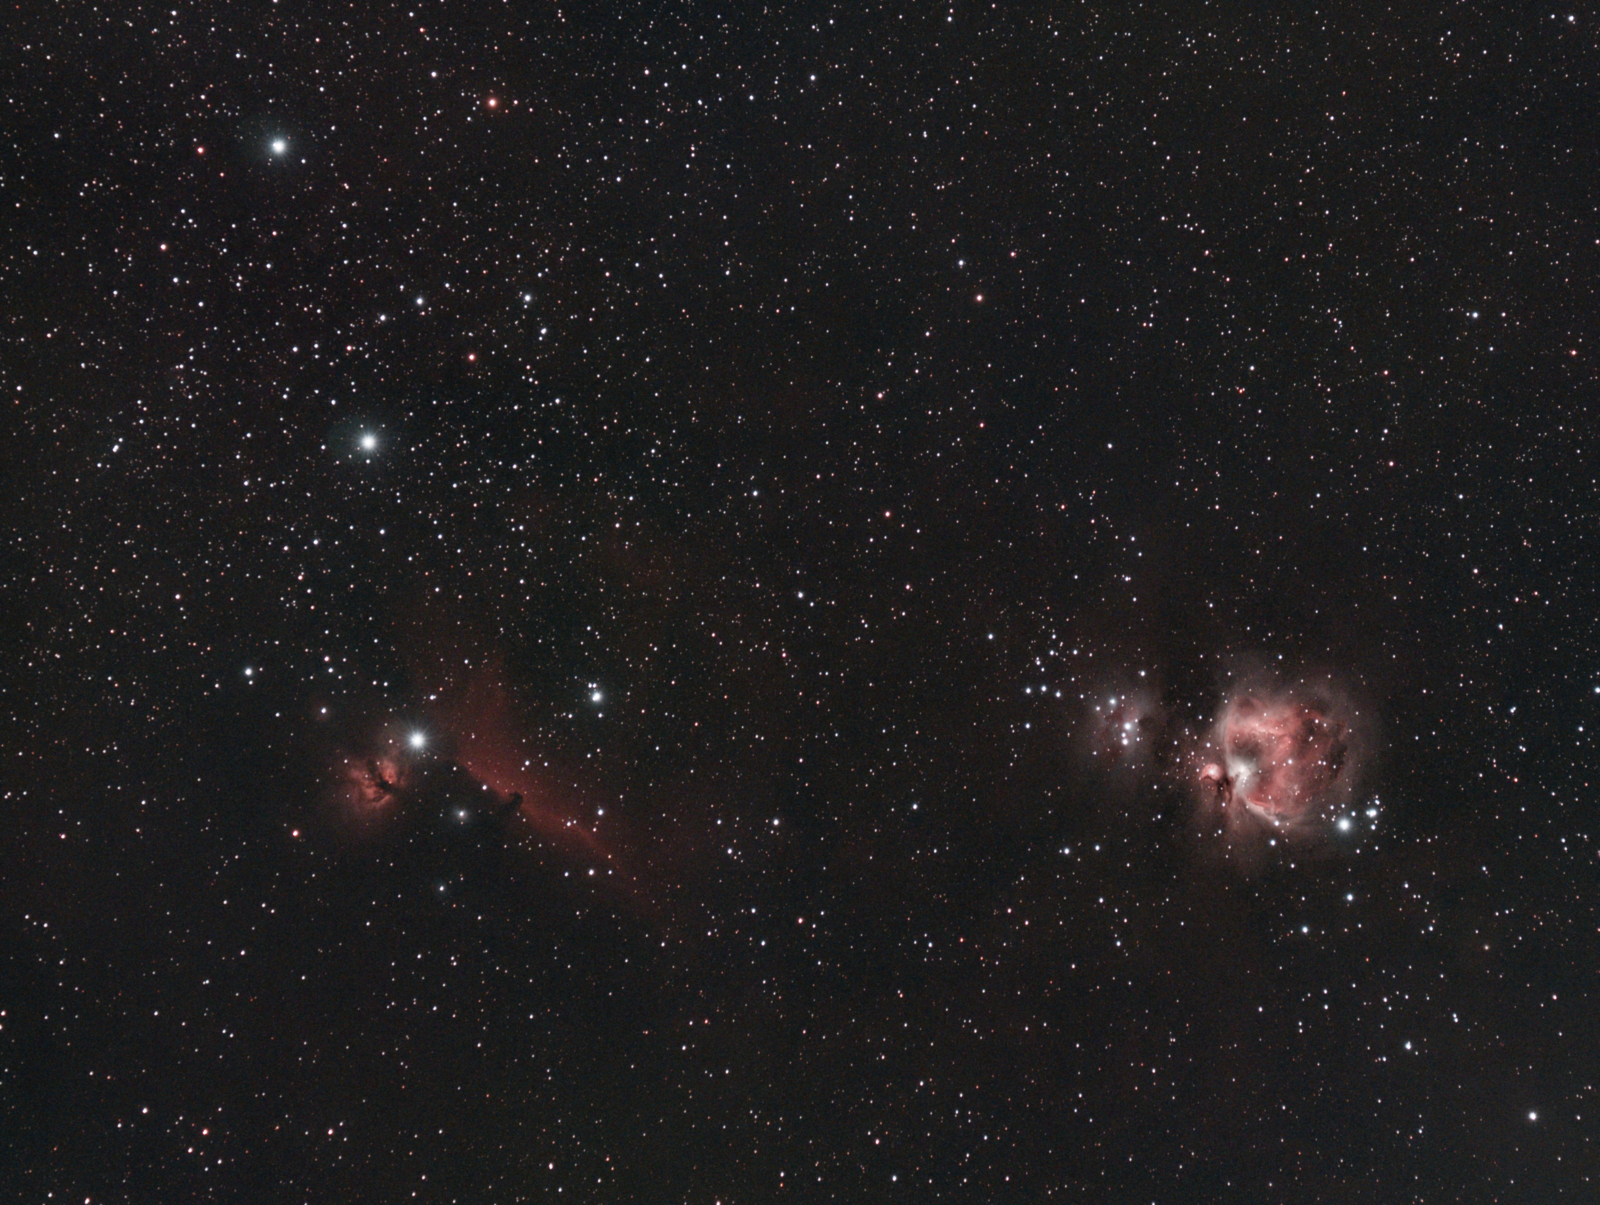 Orion_Nebula_Widefield_Canon650D_Samyang_100mm.png